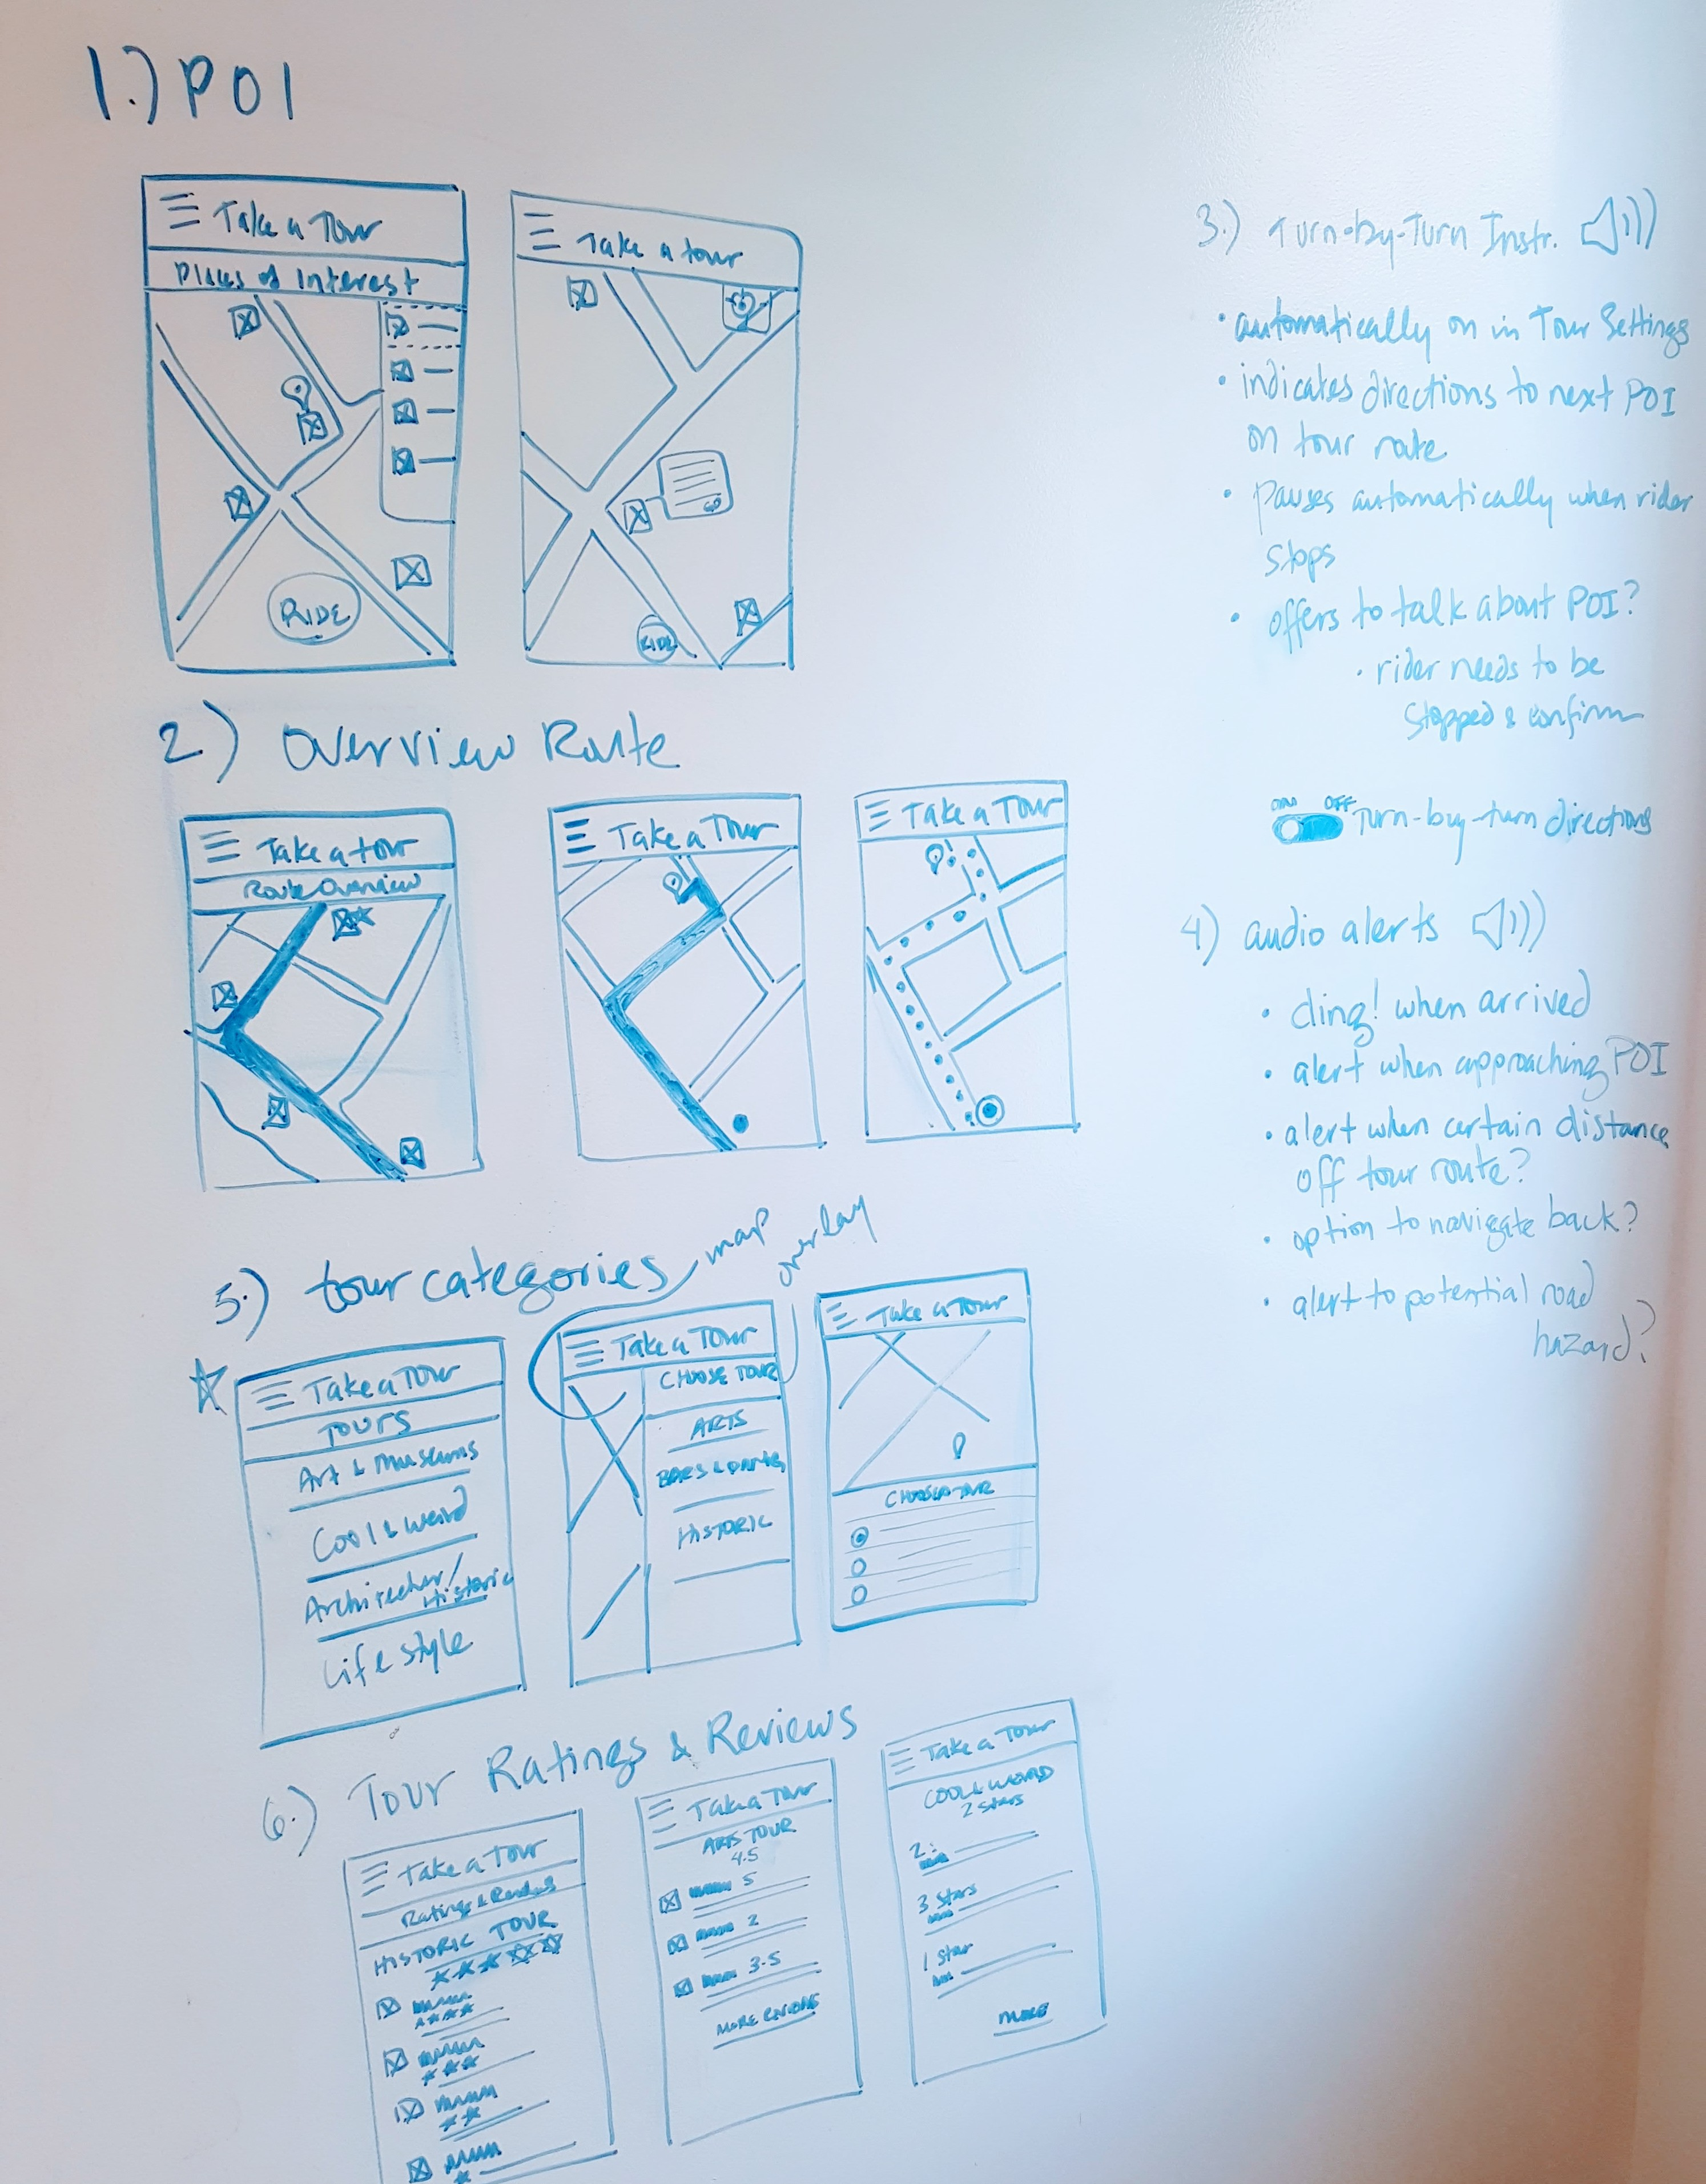 Lo-fi wireframes sketched on a whiteboard